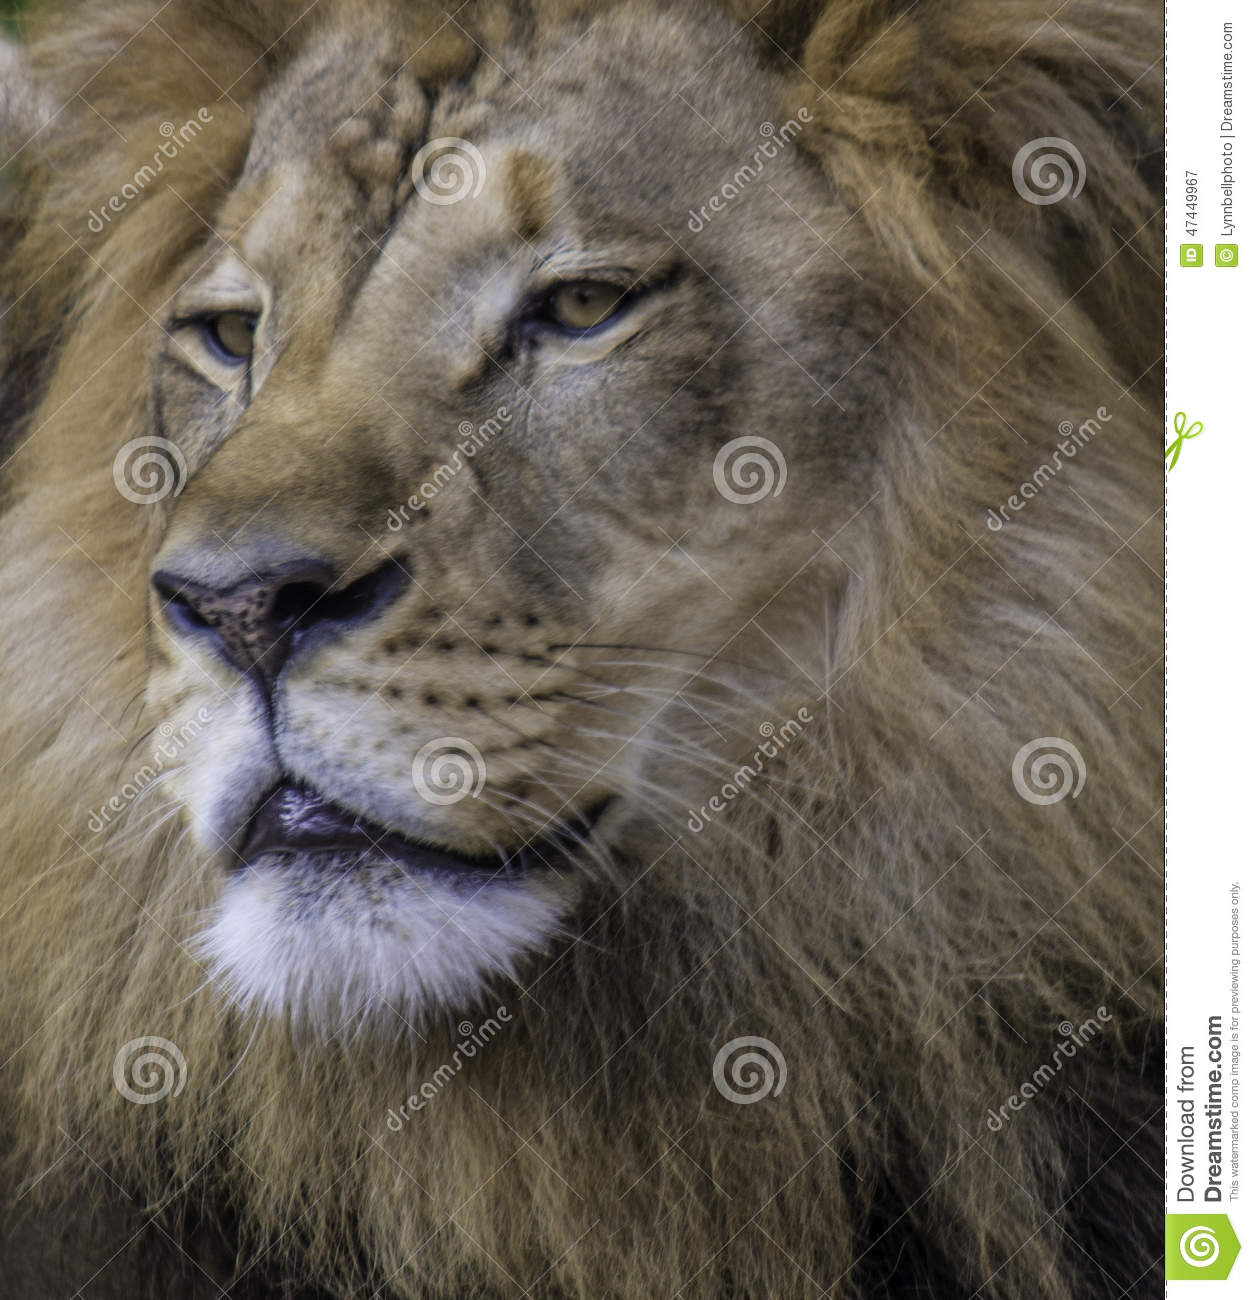 Lion Face Stock Photo - Image: 47449967